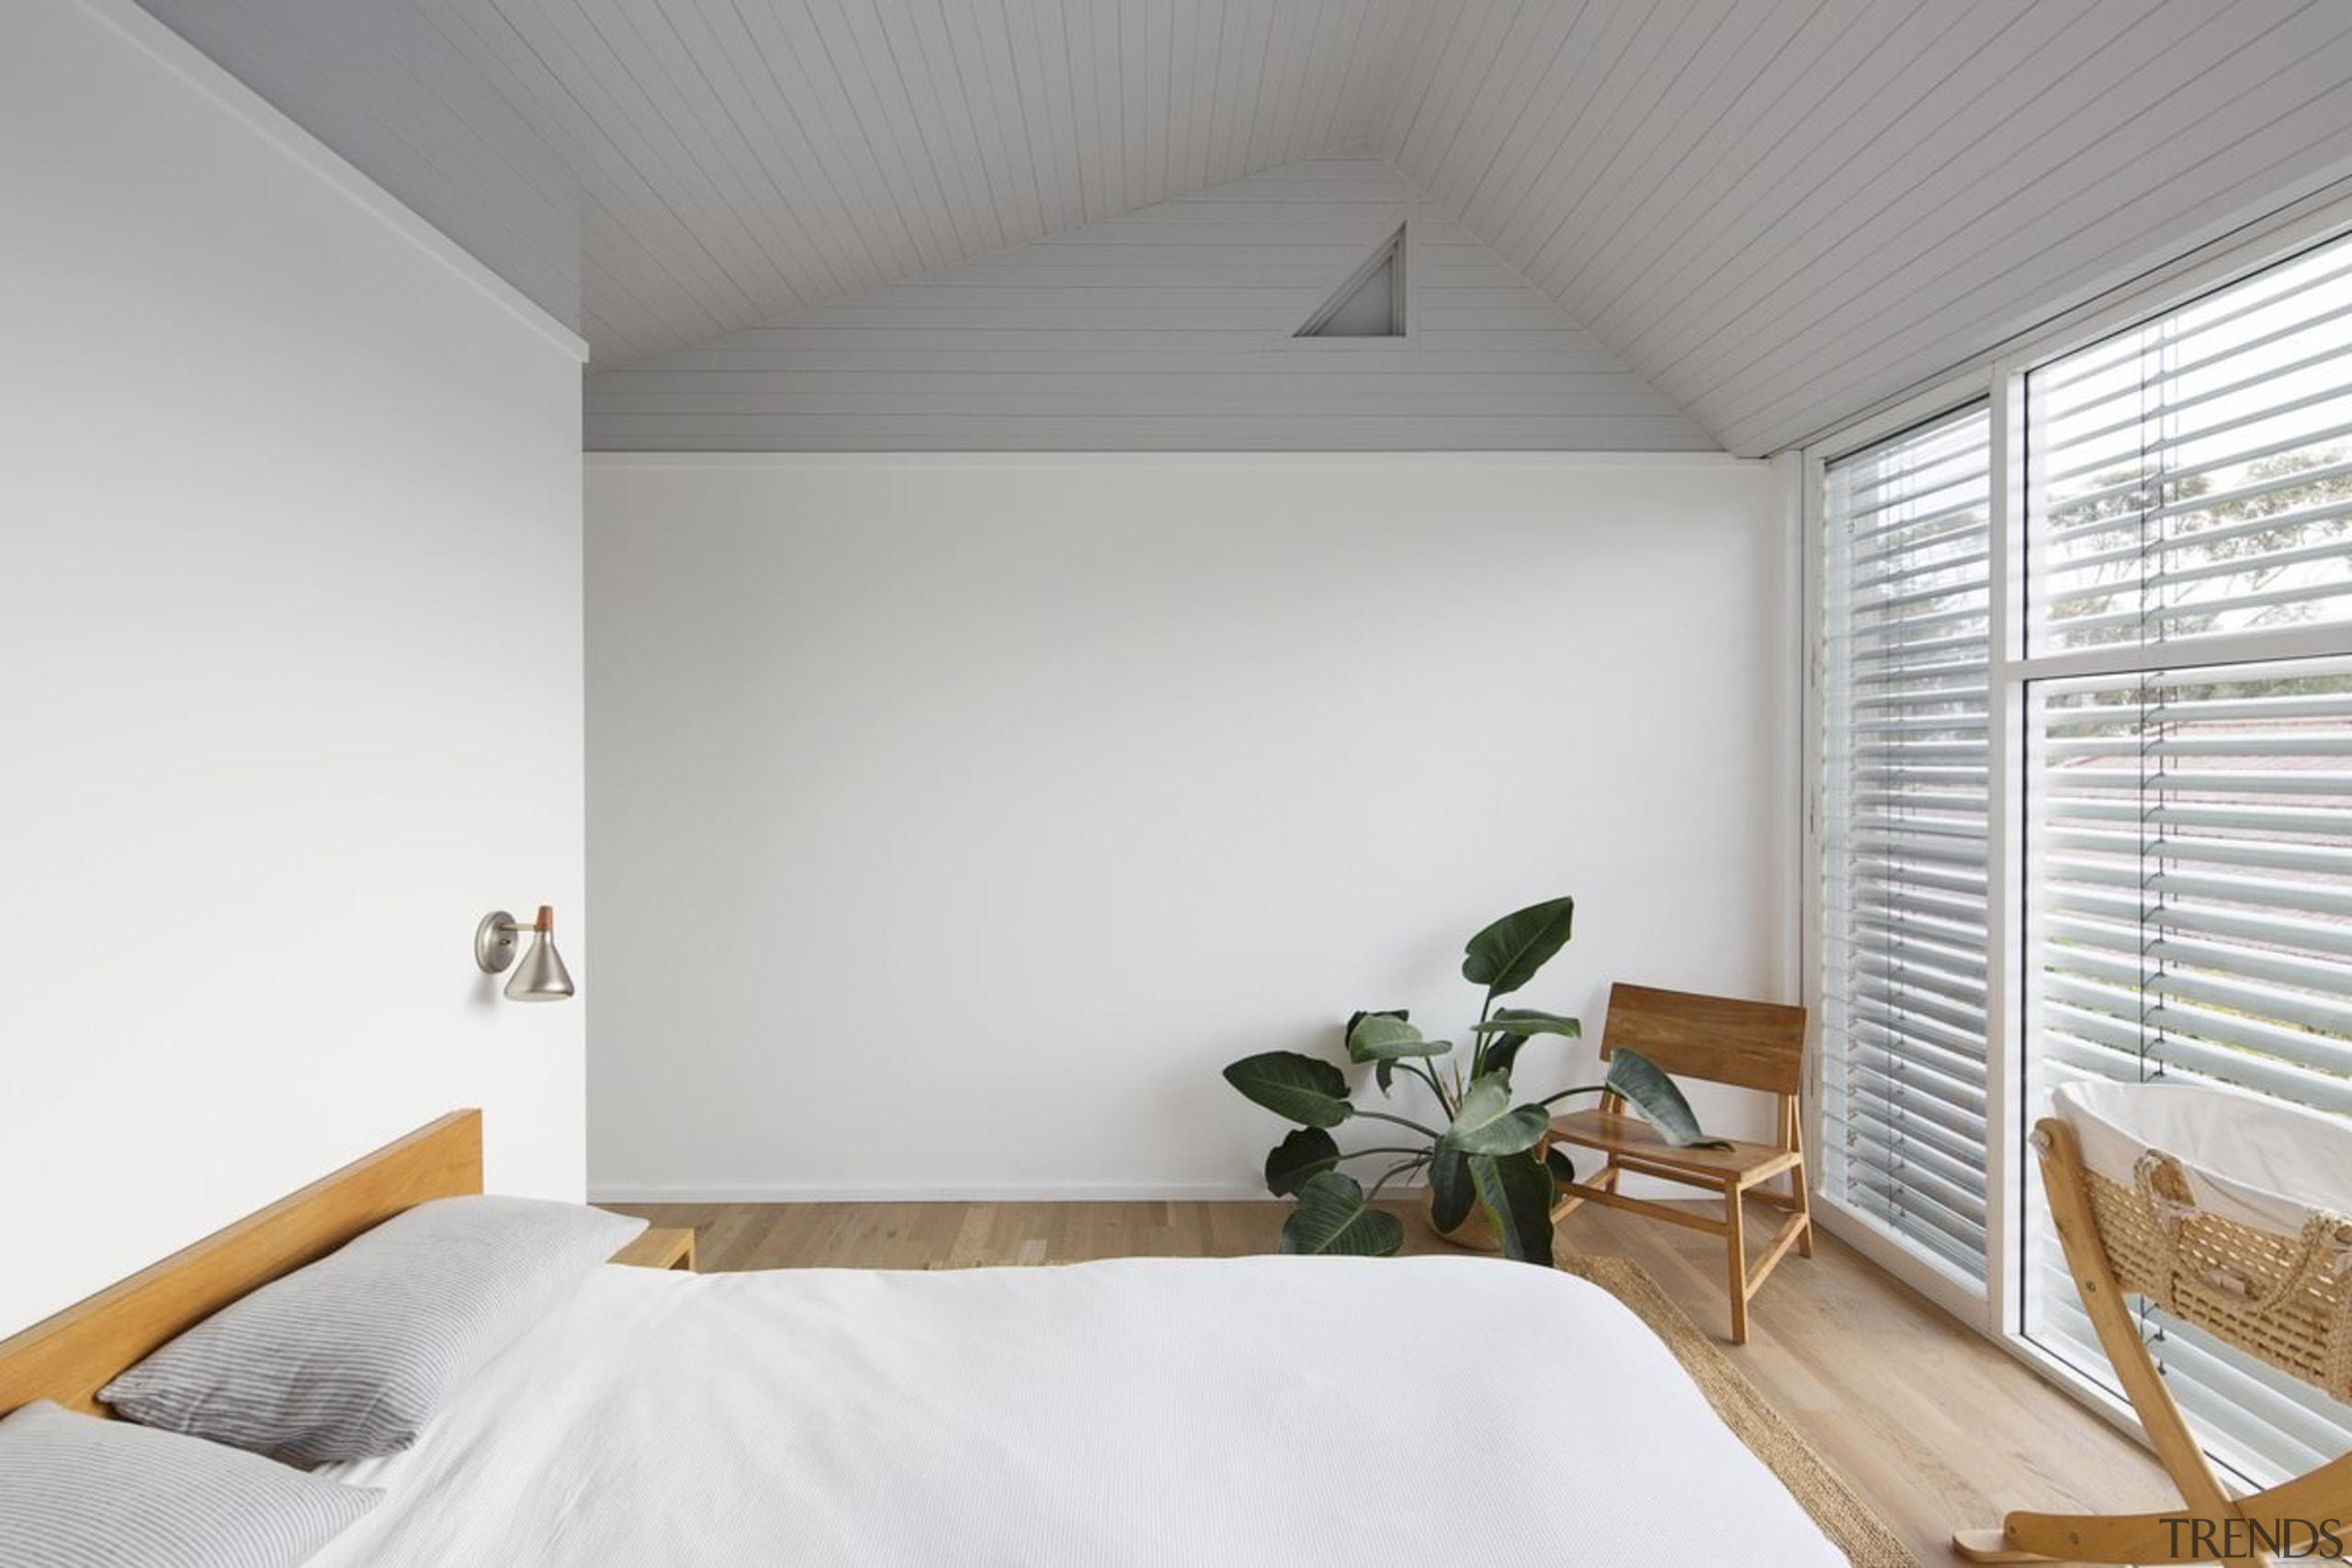 You'd never guess this home was a renovation architecture, bed frame, bedroom, ceiling, daylighting, floor, home, house, interior design, real estate, room, window, wood, gray, white